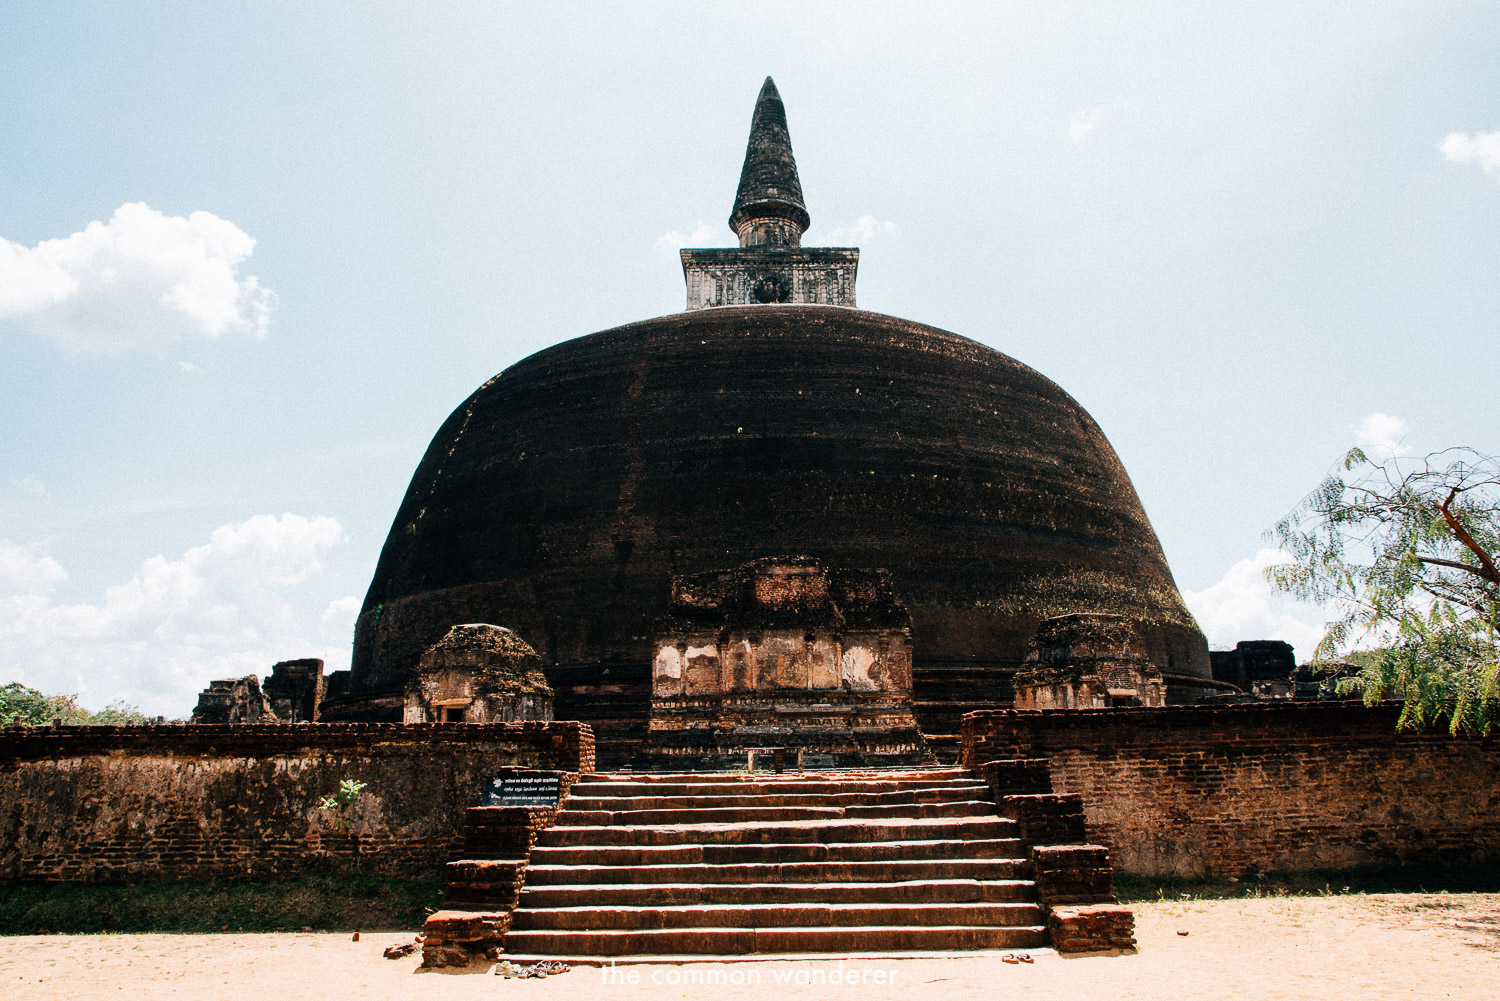 The sacred quadrangle in Polonnaruwa, Sri Lanka - the best things to see and do in Sri Lanka